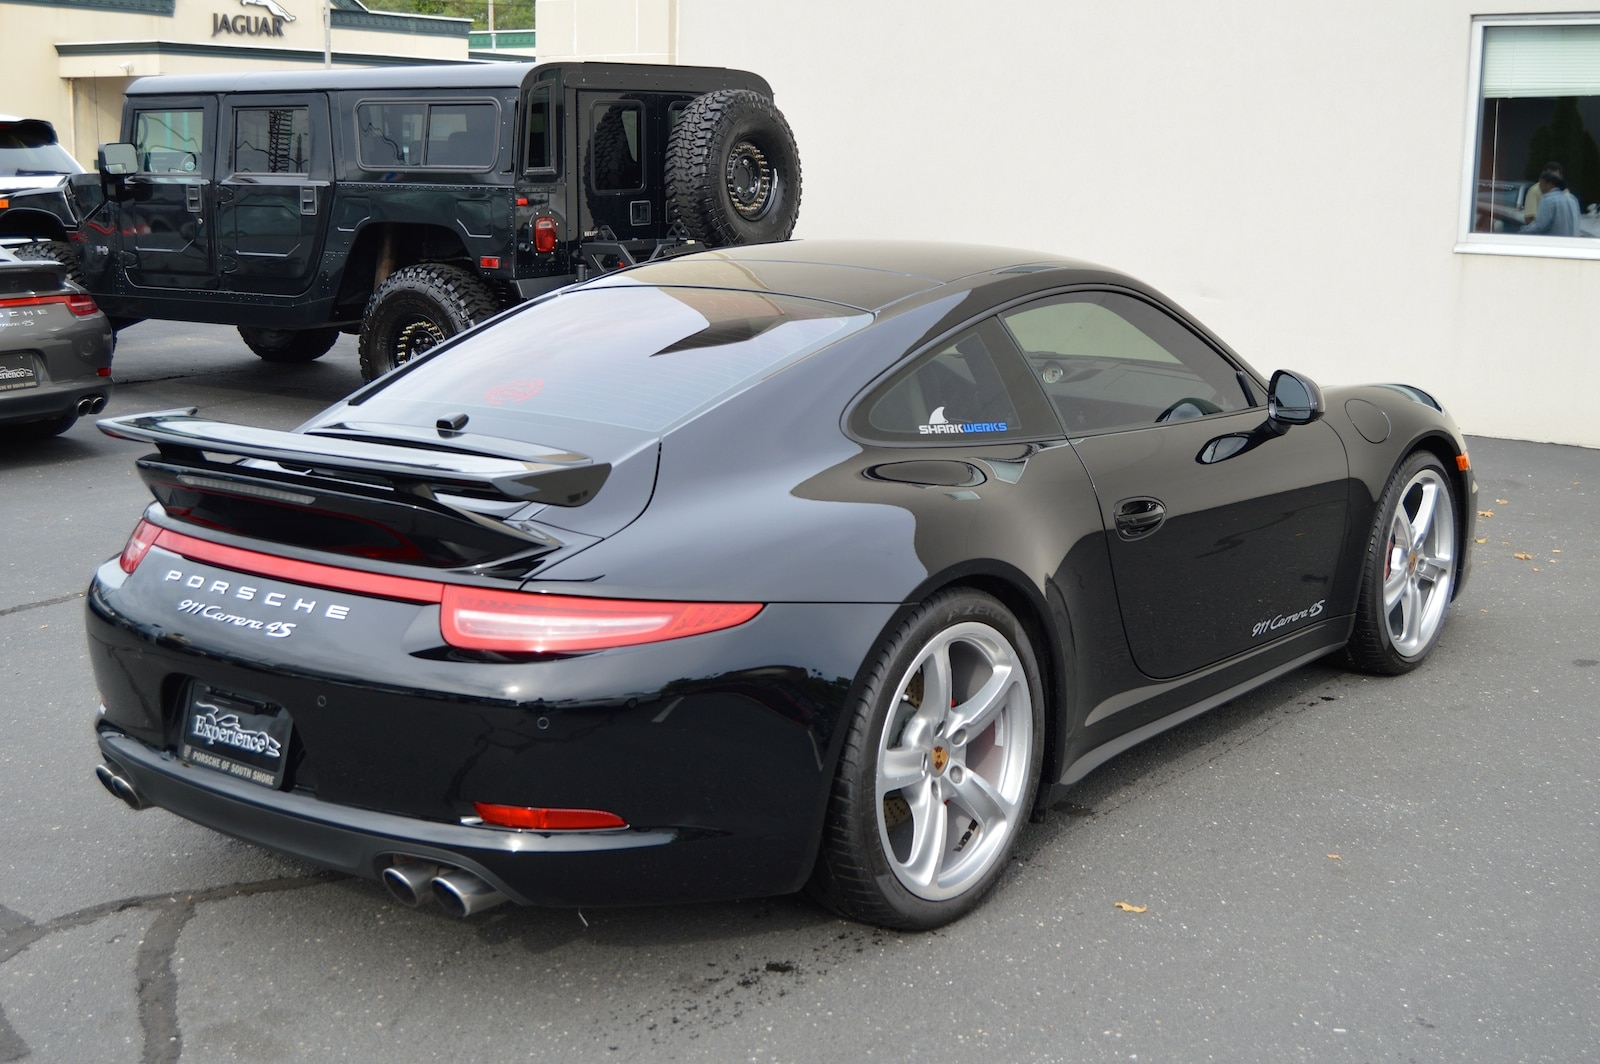 used 2014 porsche 911 carrera 4s for sale freeport ny wp0ab2a96es120226. Black Bedroom Furniture Sets. Home Design Ideas